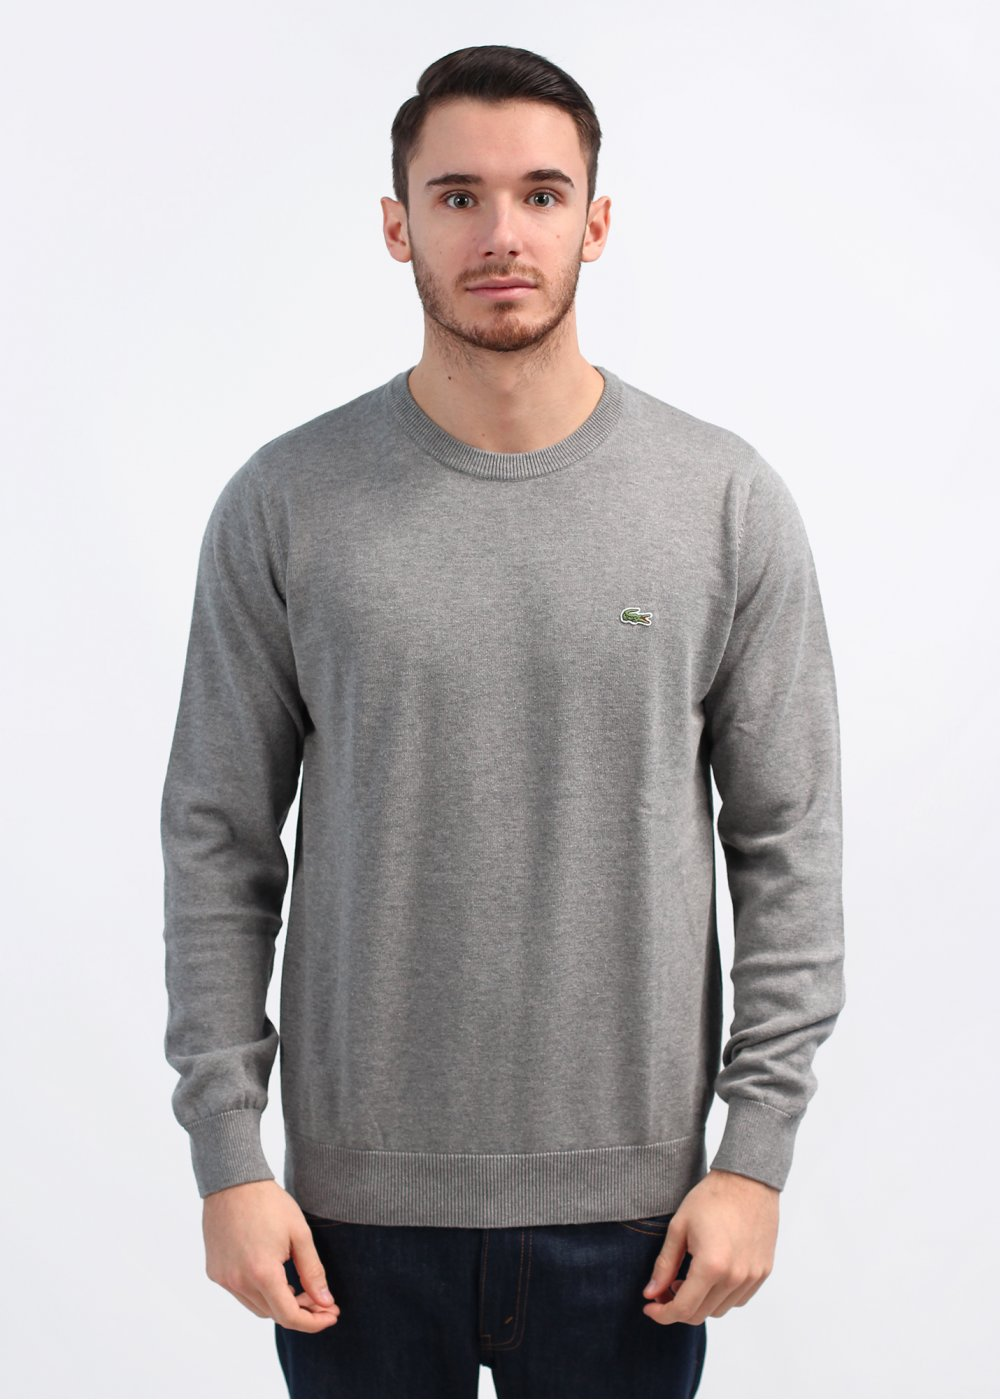 ee33676596a7 Lacoste Crew Neck Sweatshirt - Grey